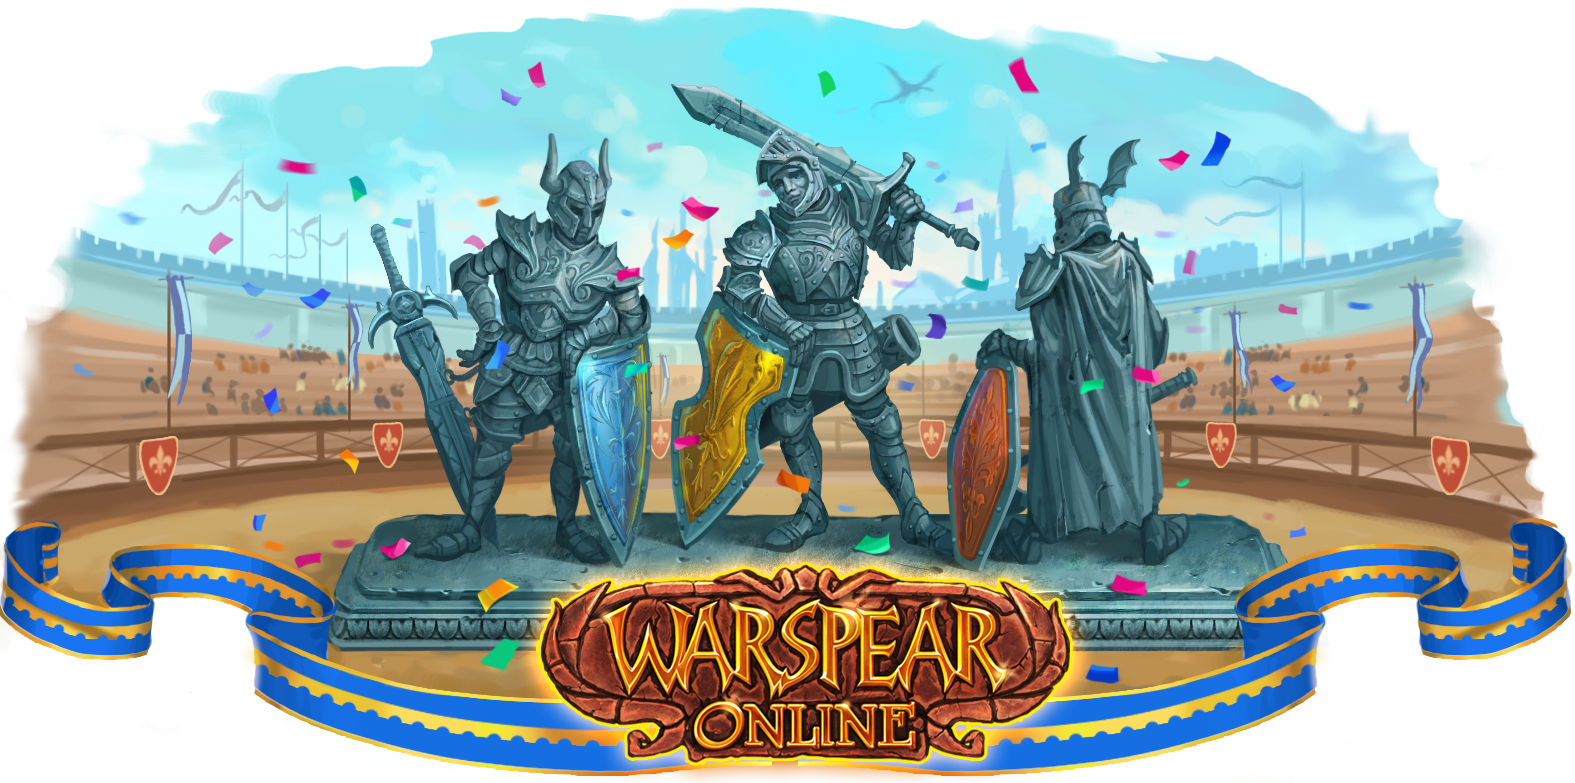 warspear.online.3.8.cover.large.png